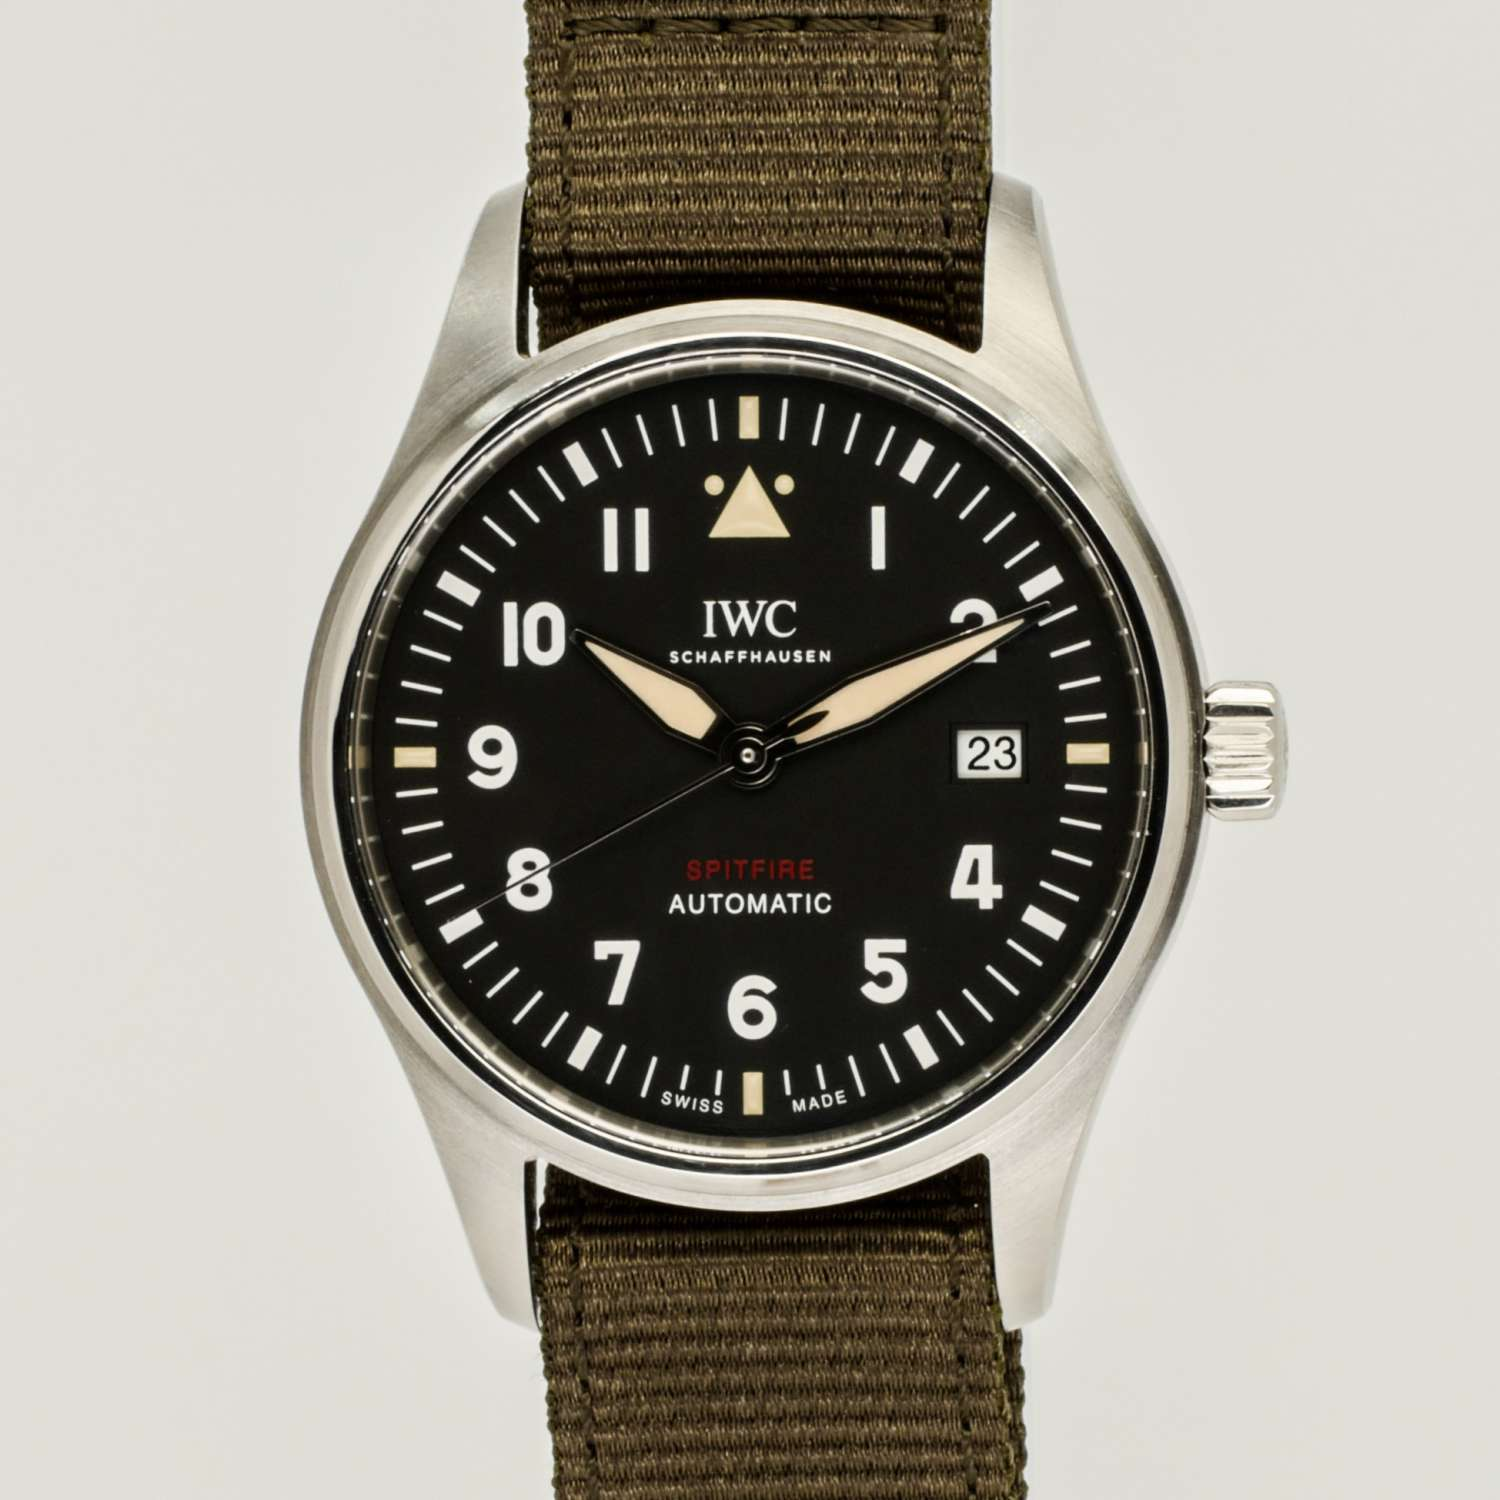 IWC Pilot's Watch Automatic Spitfire, Boxed 5852059